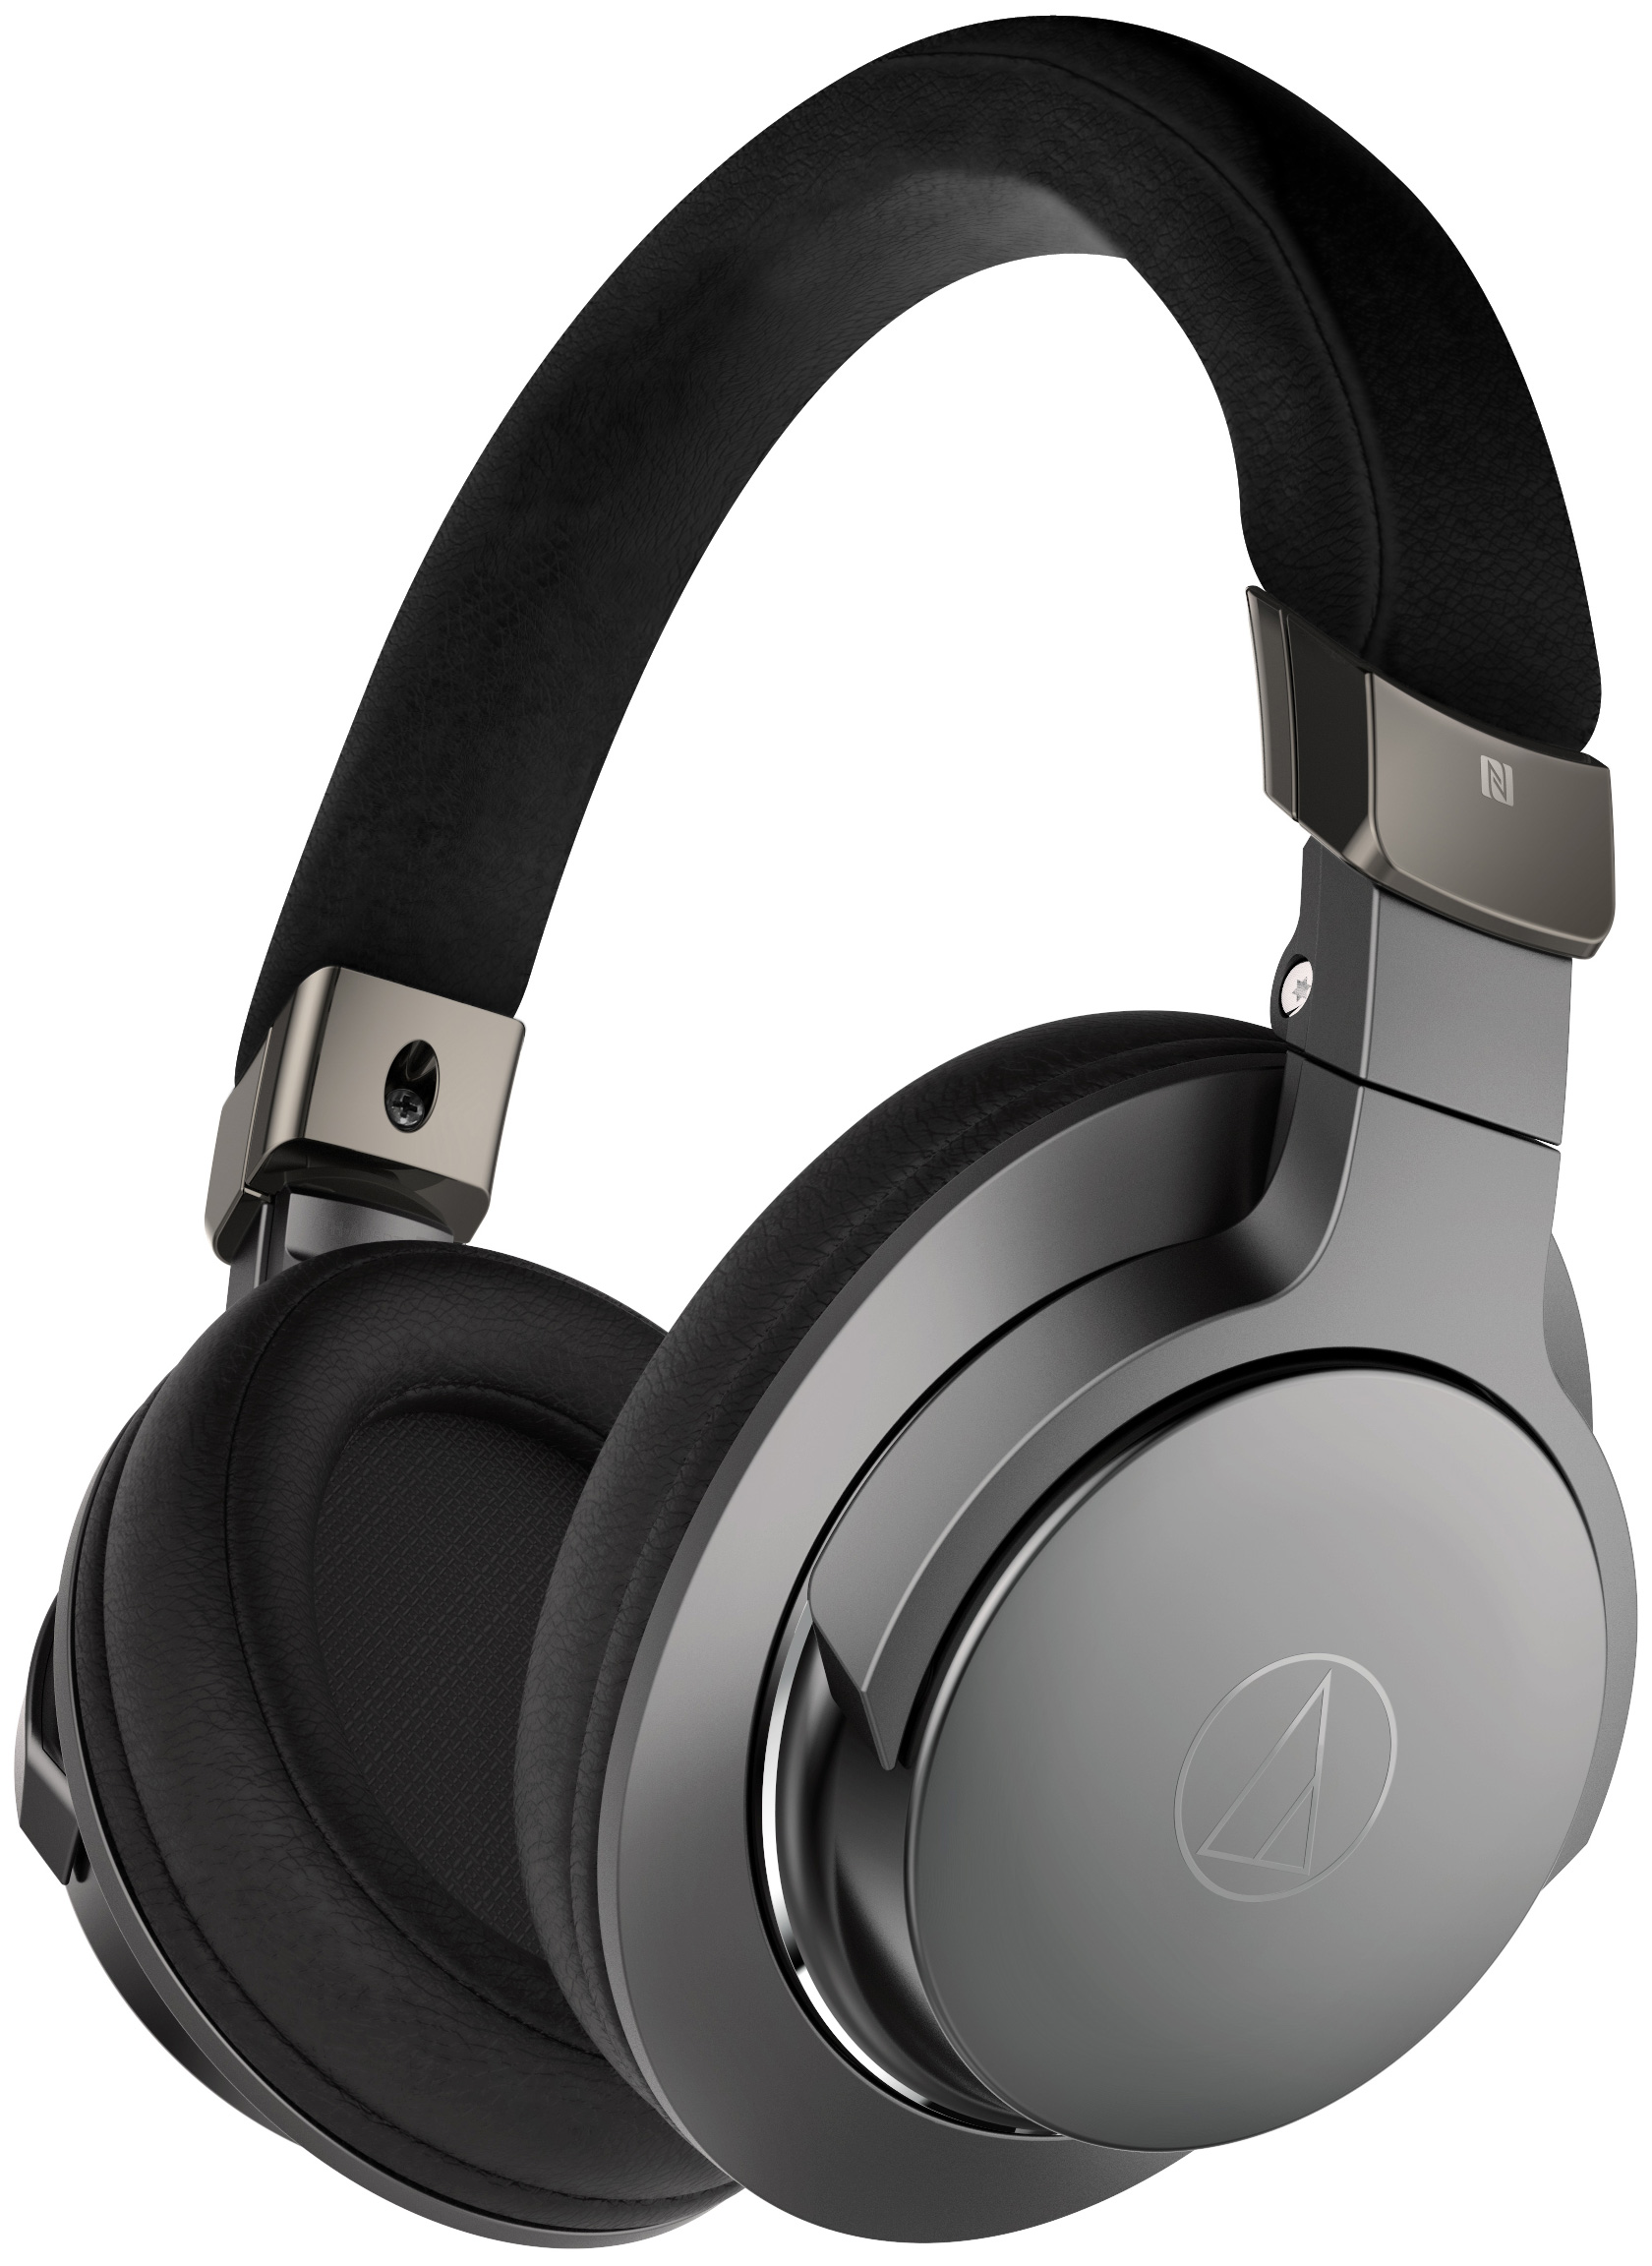 Audio-Technica Introduces Its ATH-SR6BT Wireless High-Resolution Headphones, Available Exclusively At Best Buy